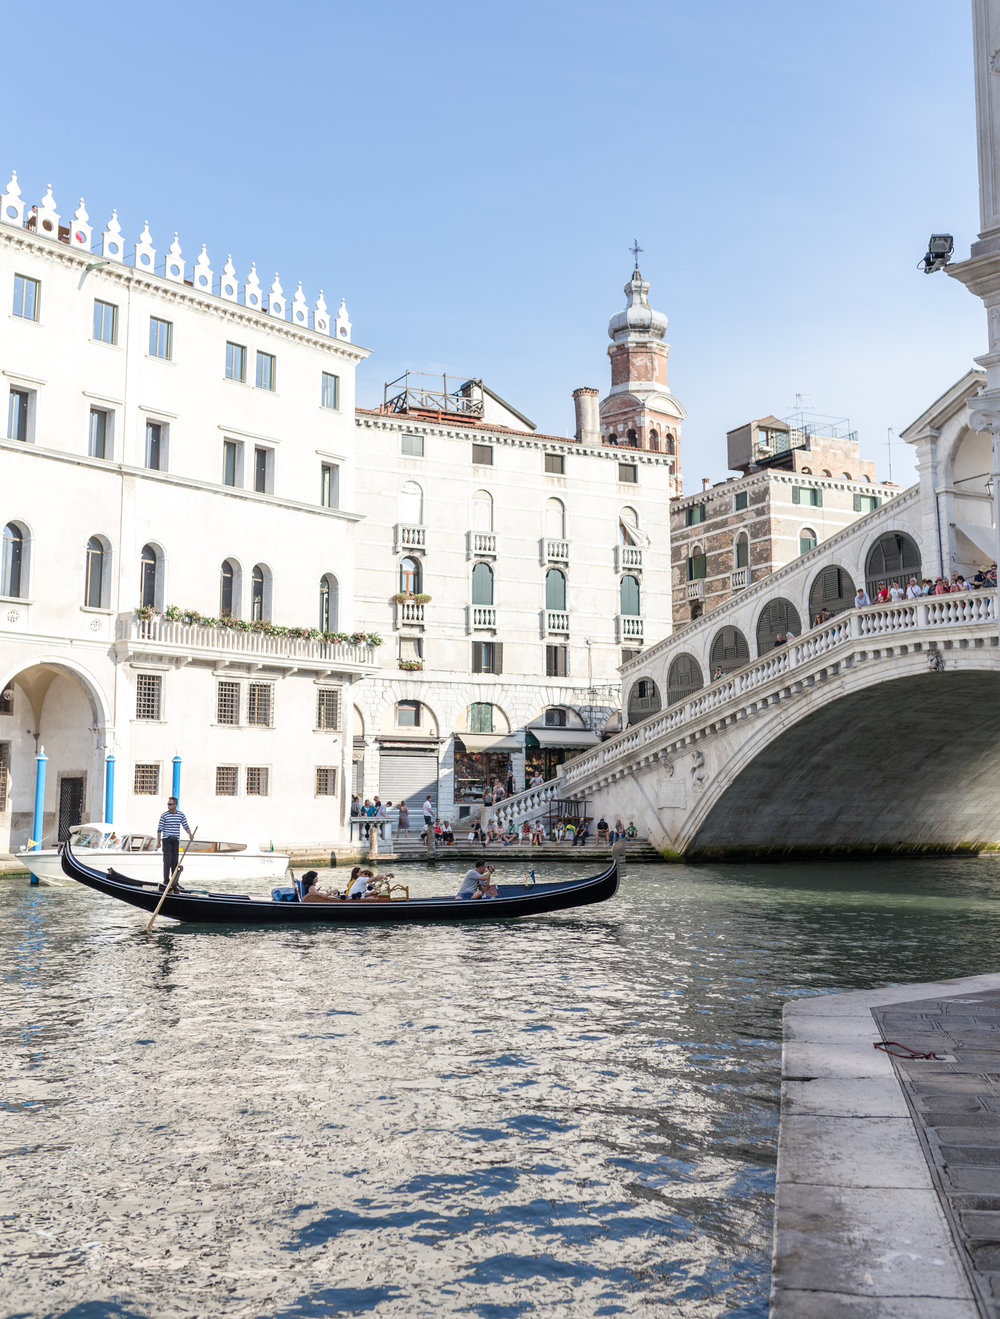 The Rialto Bridge, taken from a sidewalk on the Grand Canal